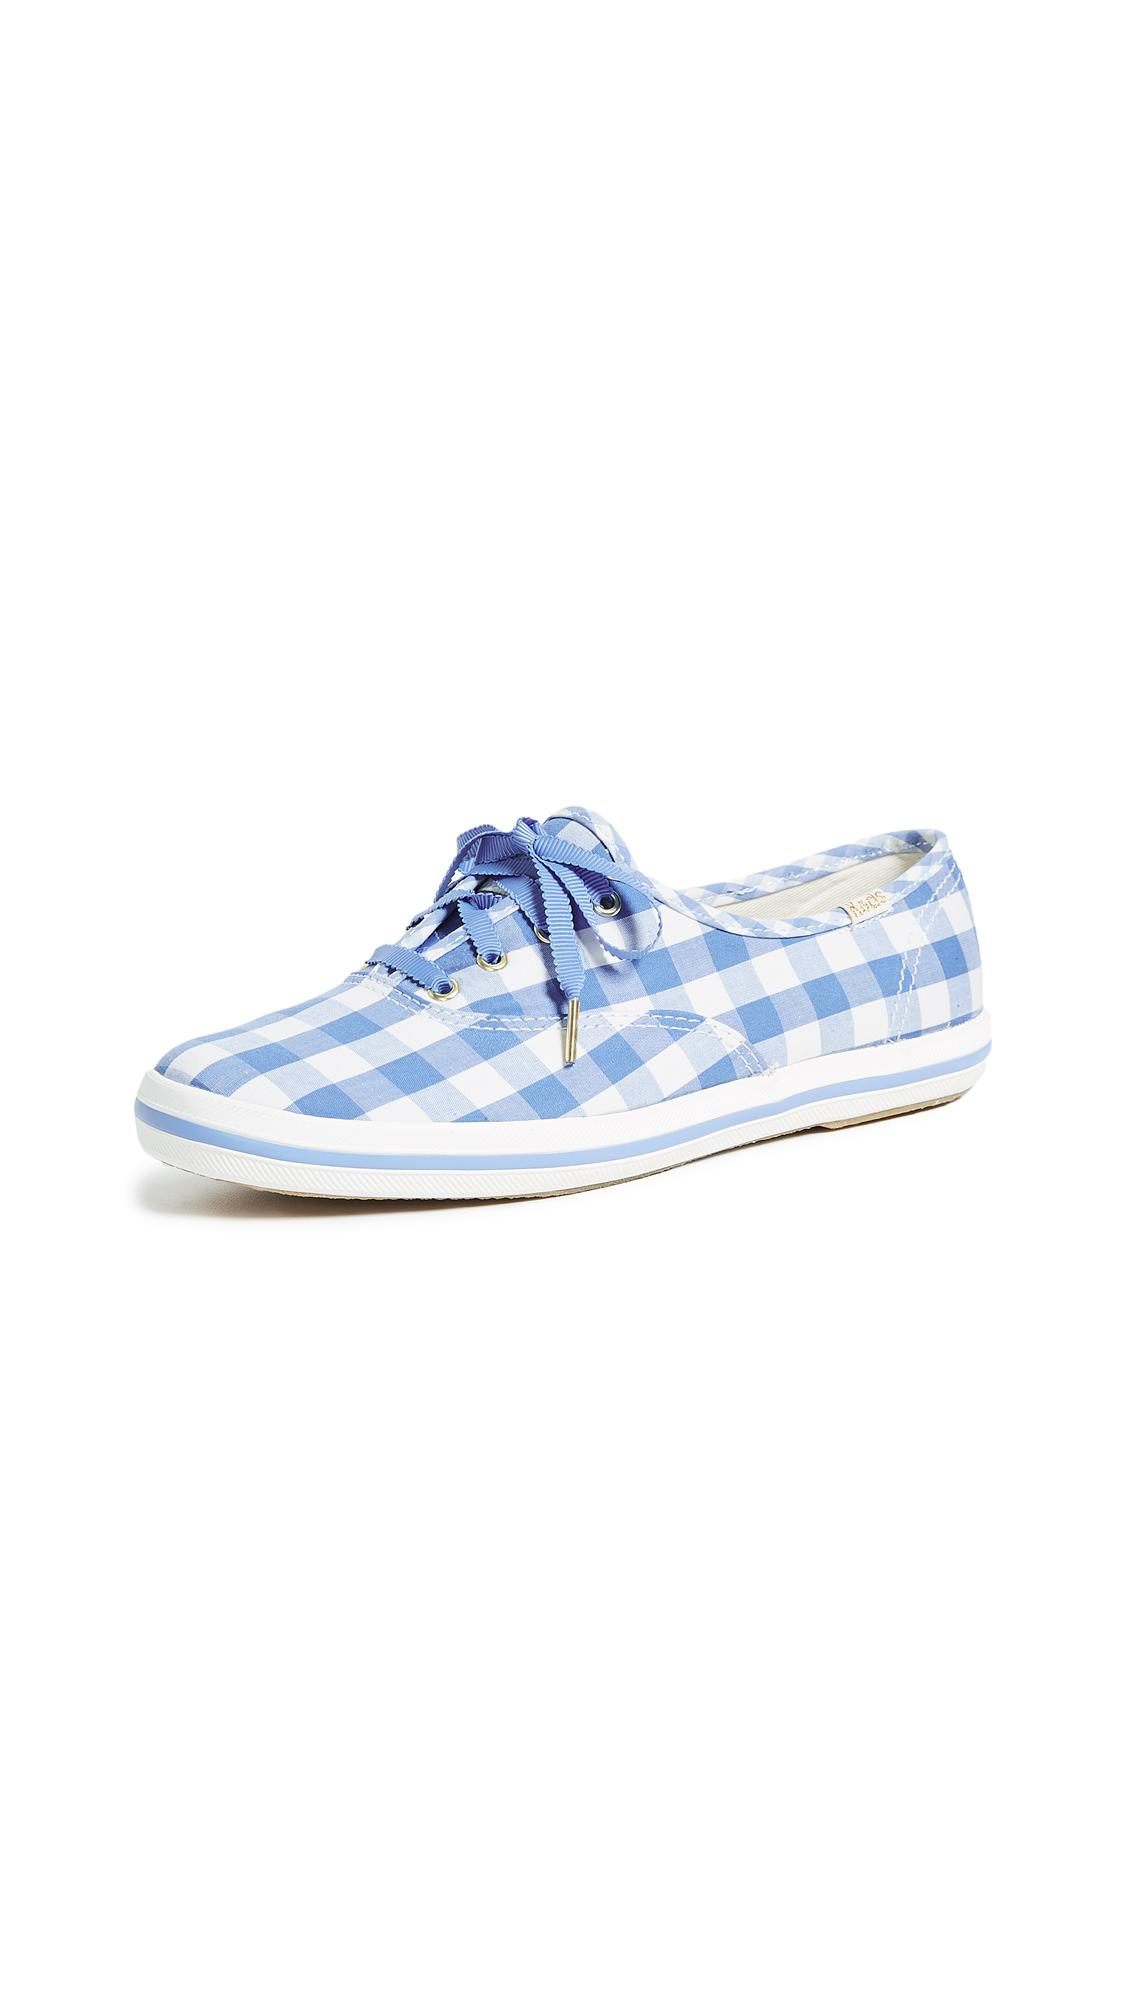 a8498883a4b Keds X Kate Spade New York Gingham Sneakers In Periwinkle